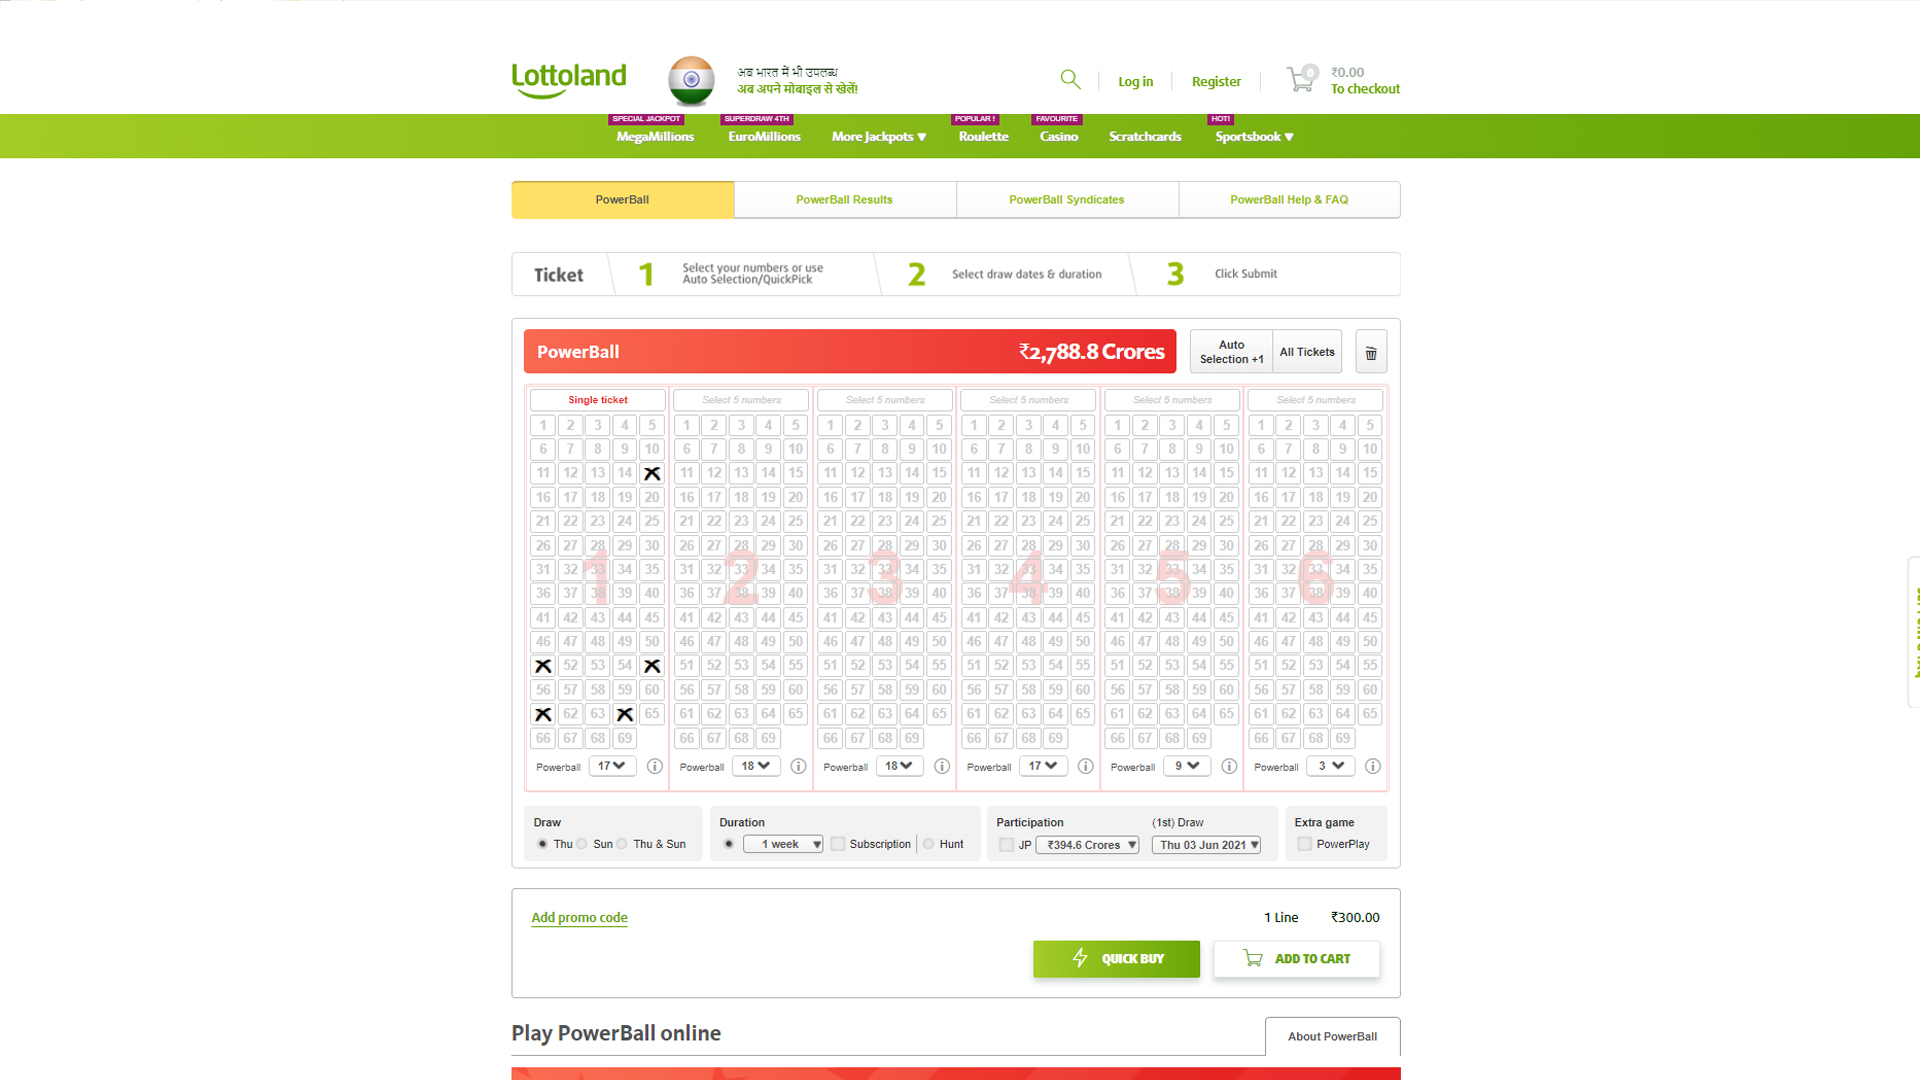 The PowerBall at LottoLand is one of the most popular lotteries on this site.